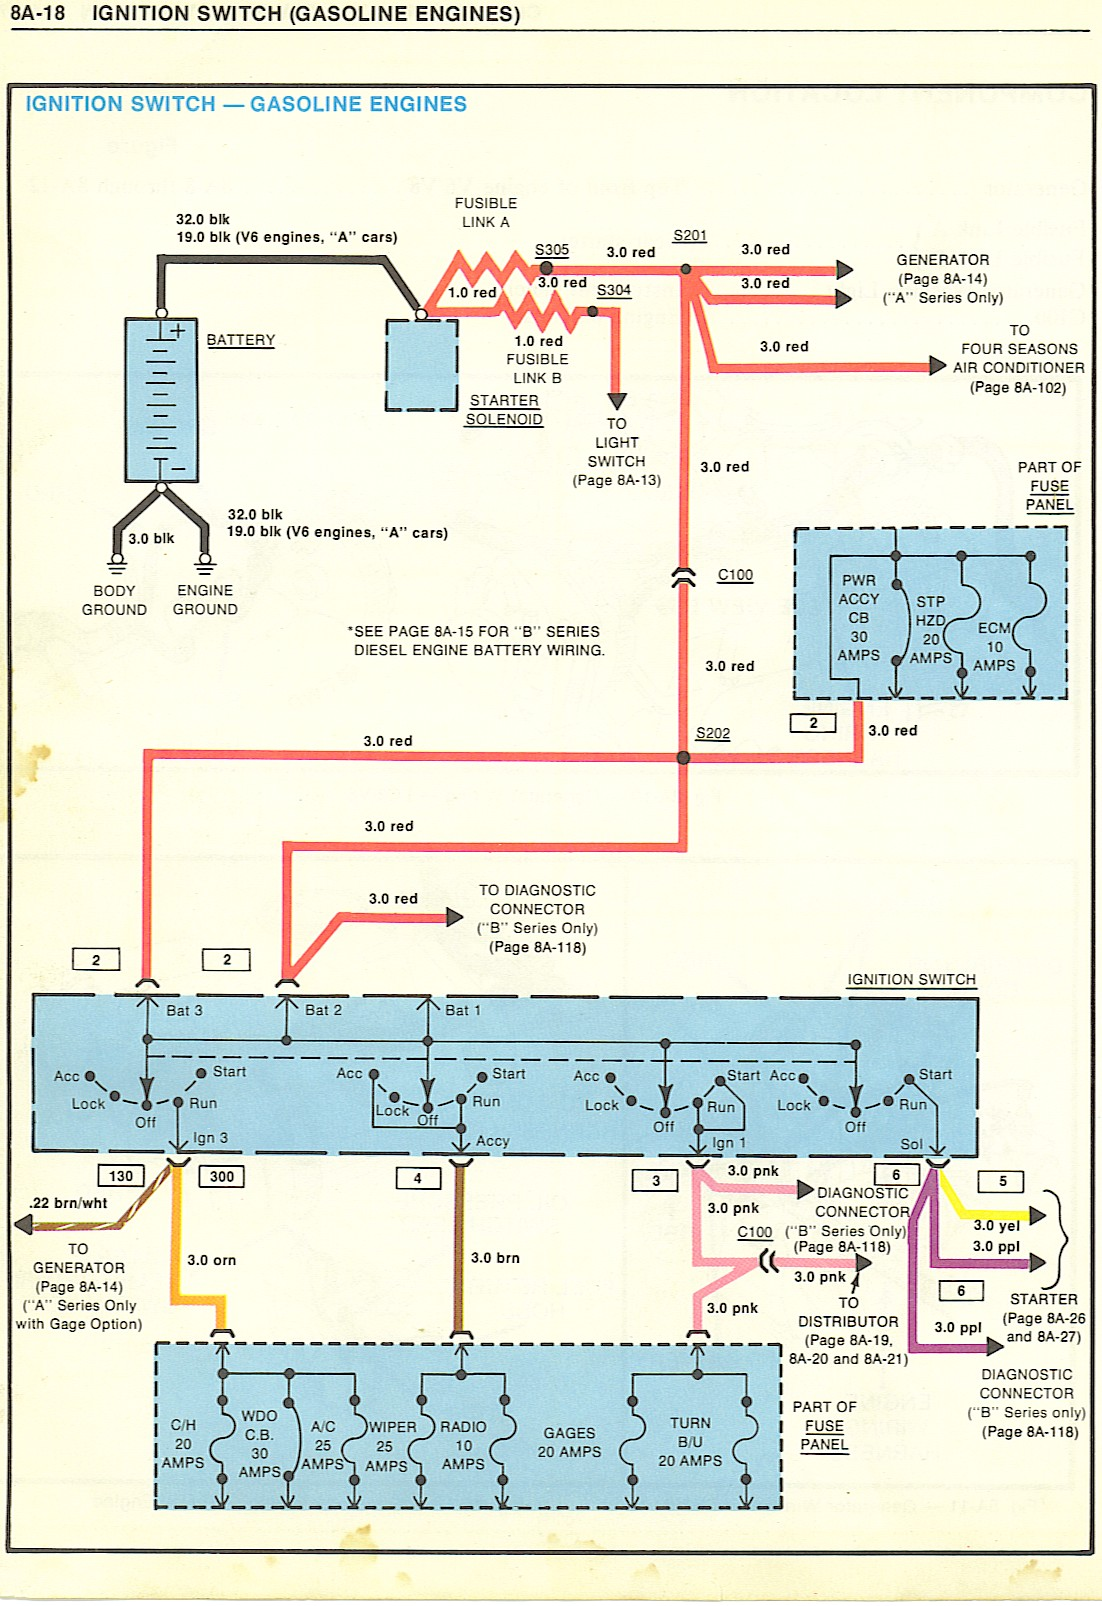 Diagram Light Switch Wiring Diagram Wiring Diagram Full Version Hd Quality Wiring Diagram Diagramshop Siggy2000 De